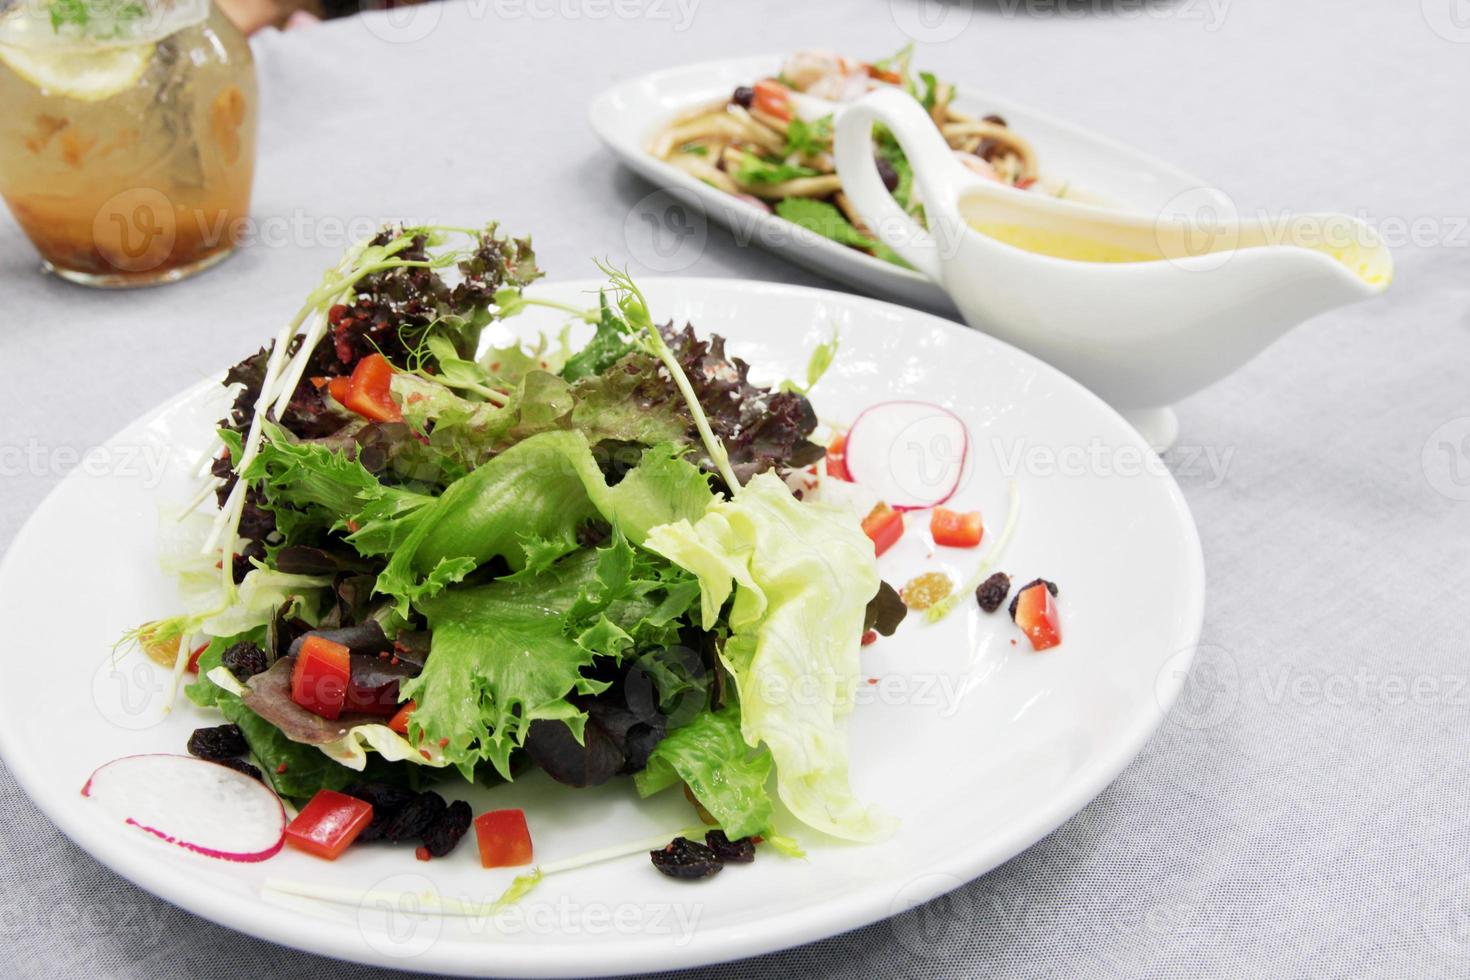 Vegetable and salad dressing photo